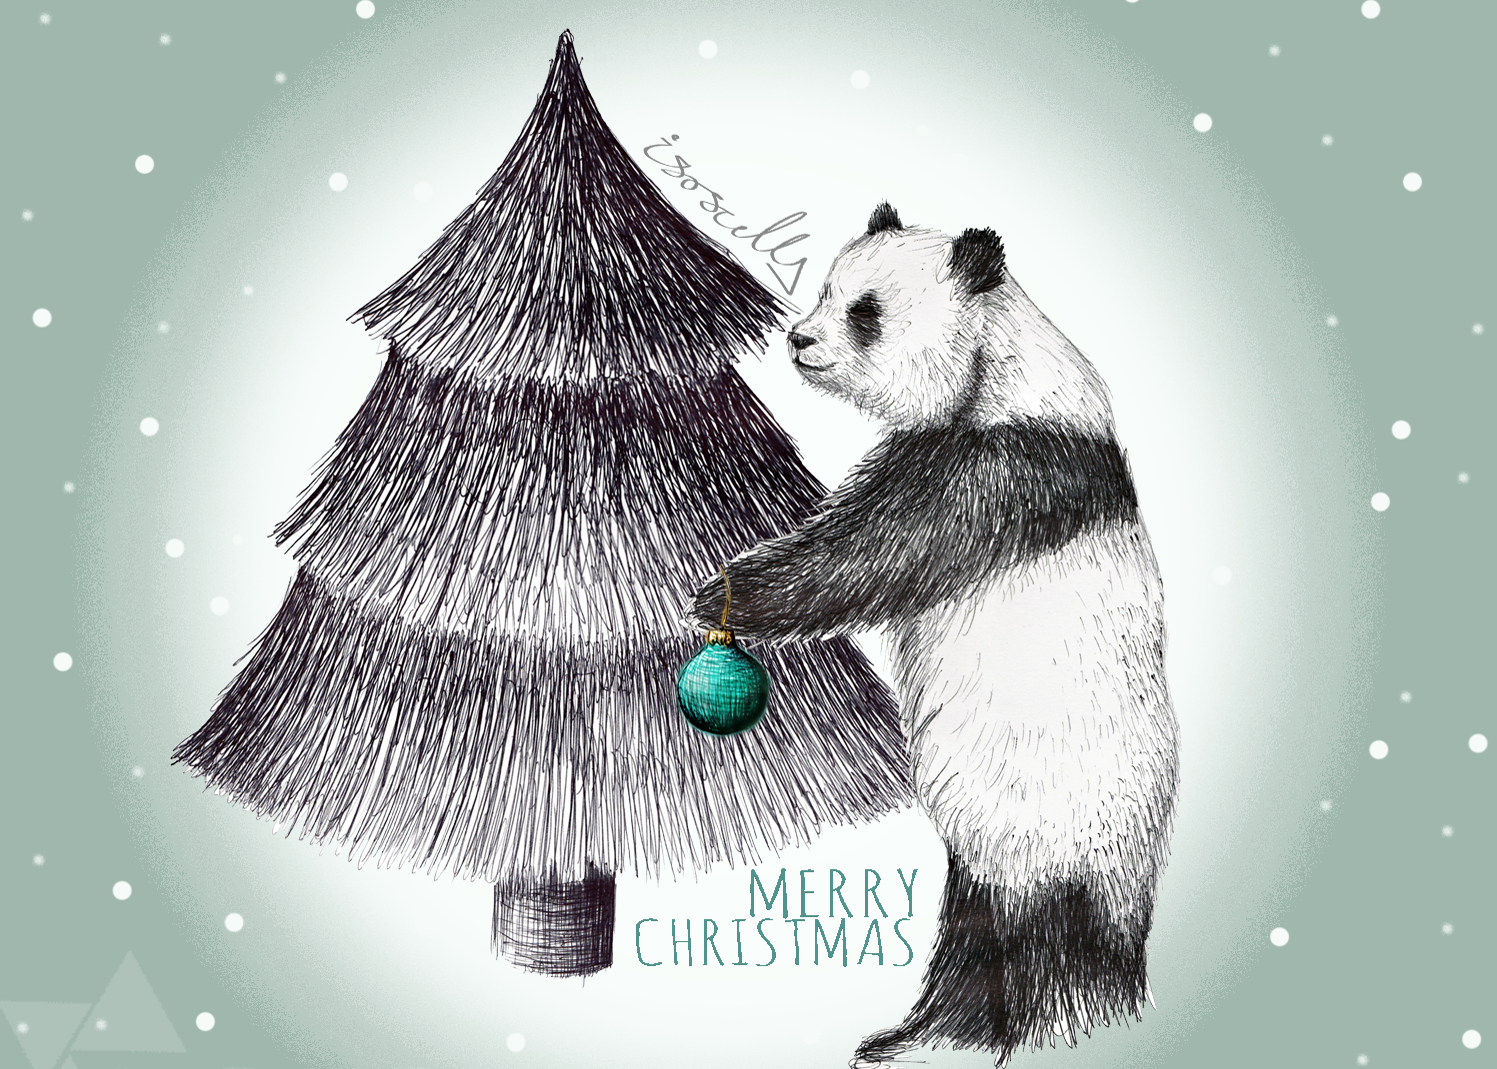 Art Handmade Christmas Cards by Isoscella